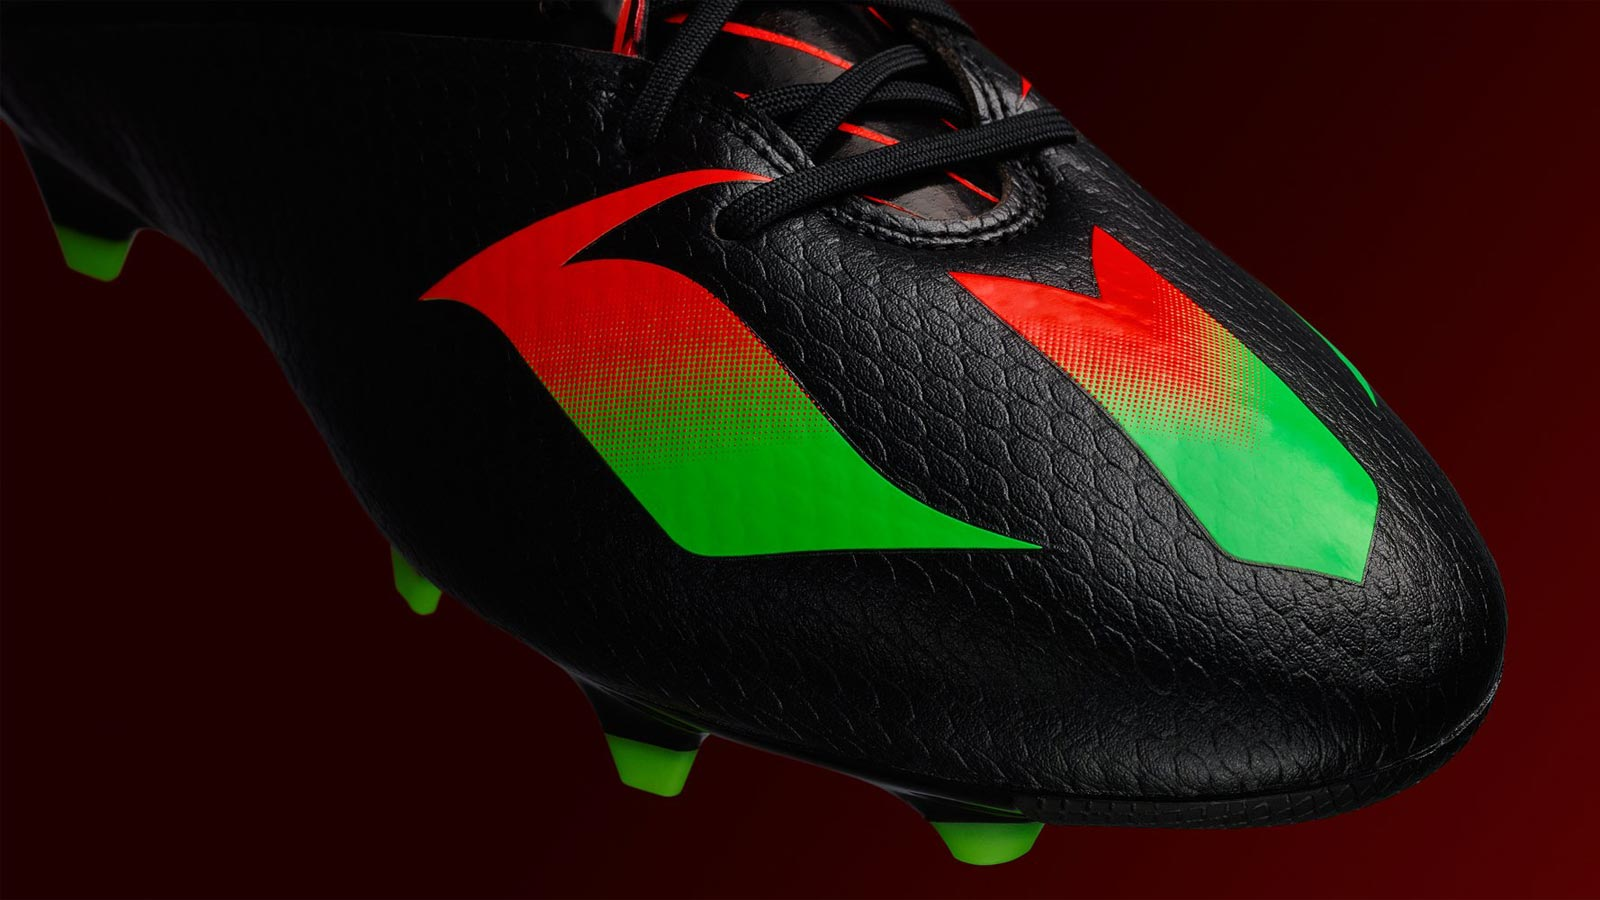 adidas messi 15.1 release